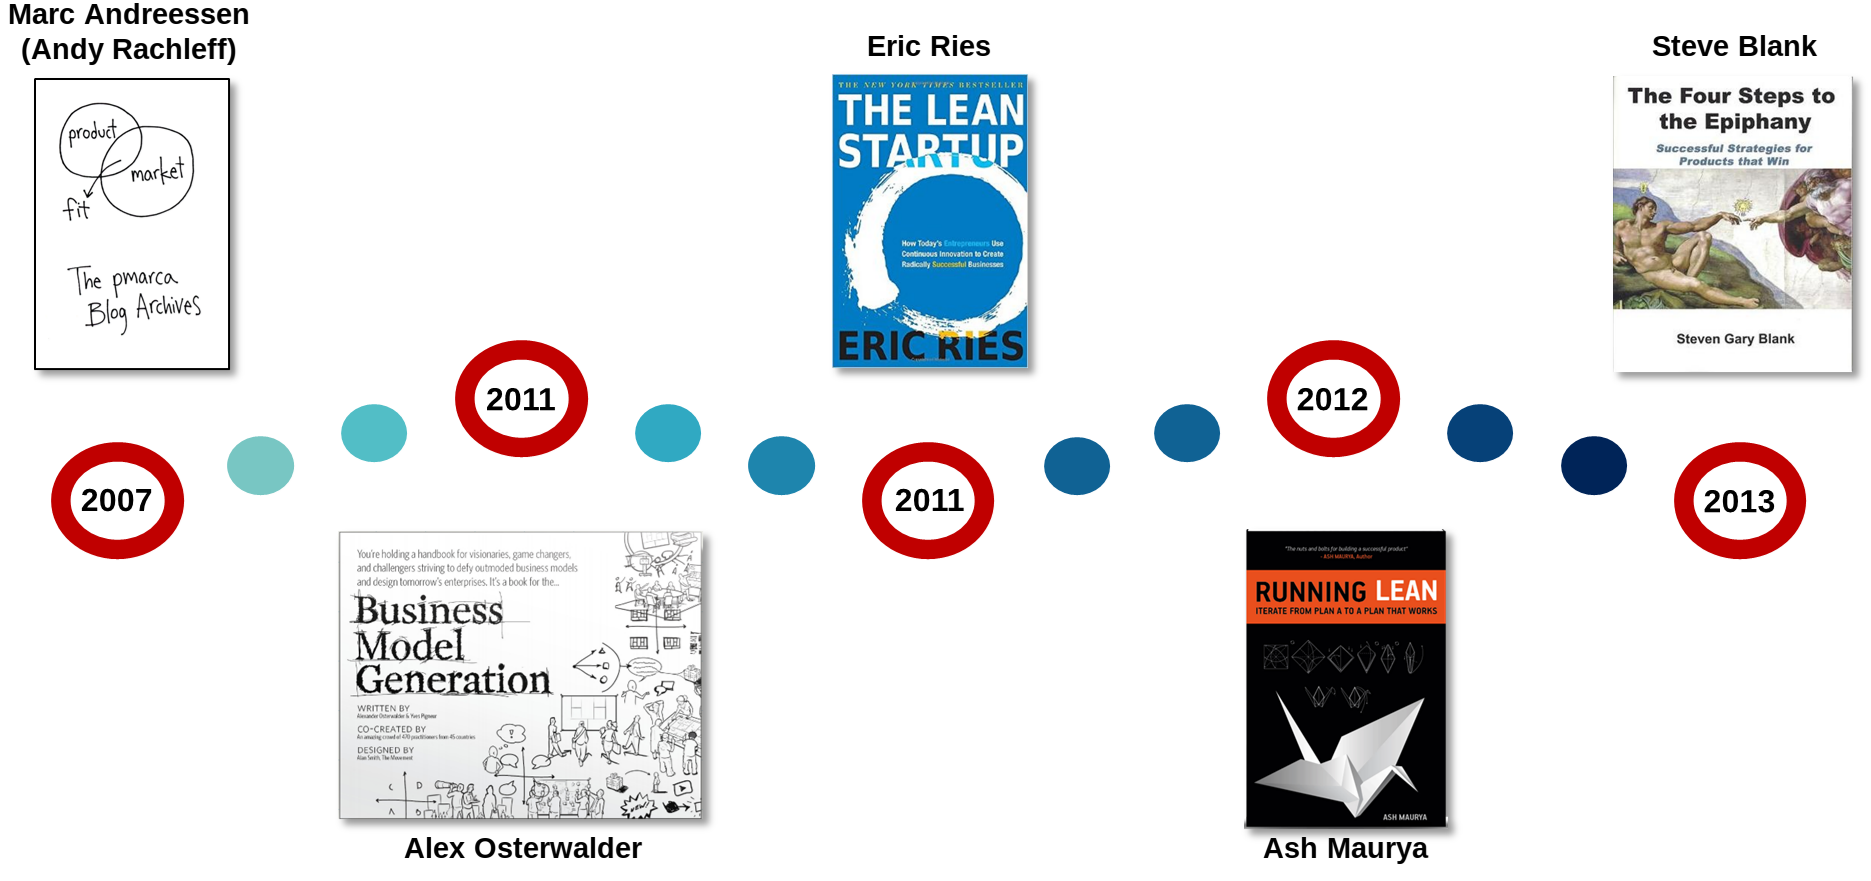 History of Lean startup